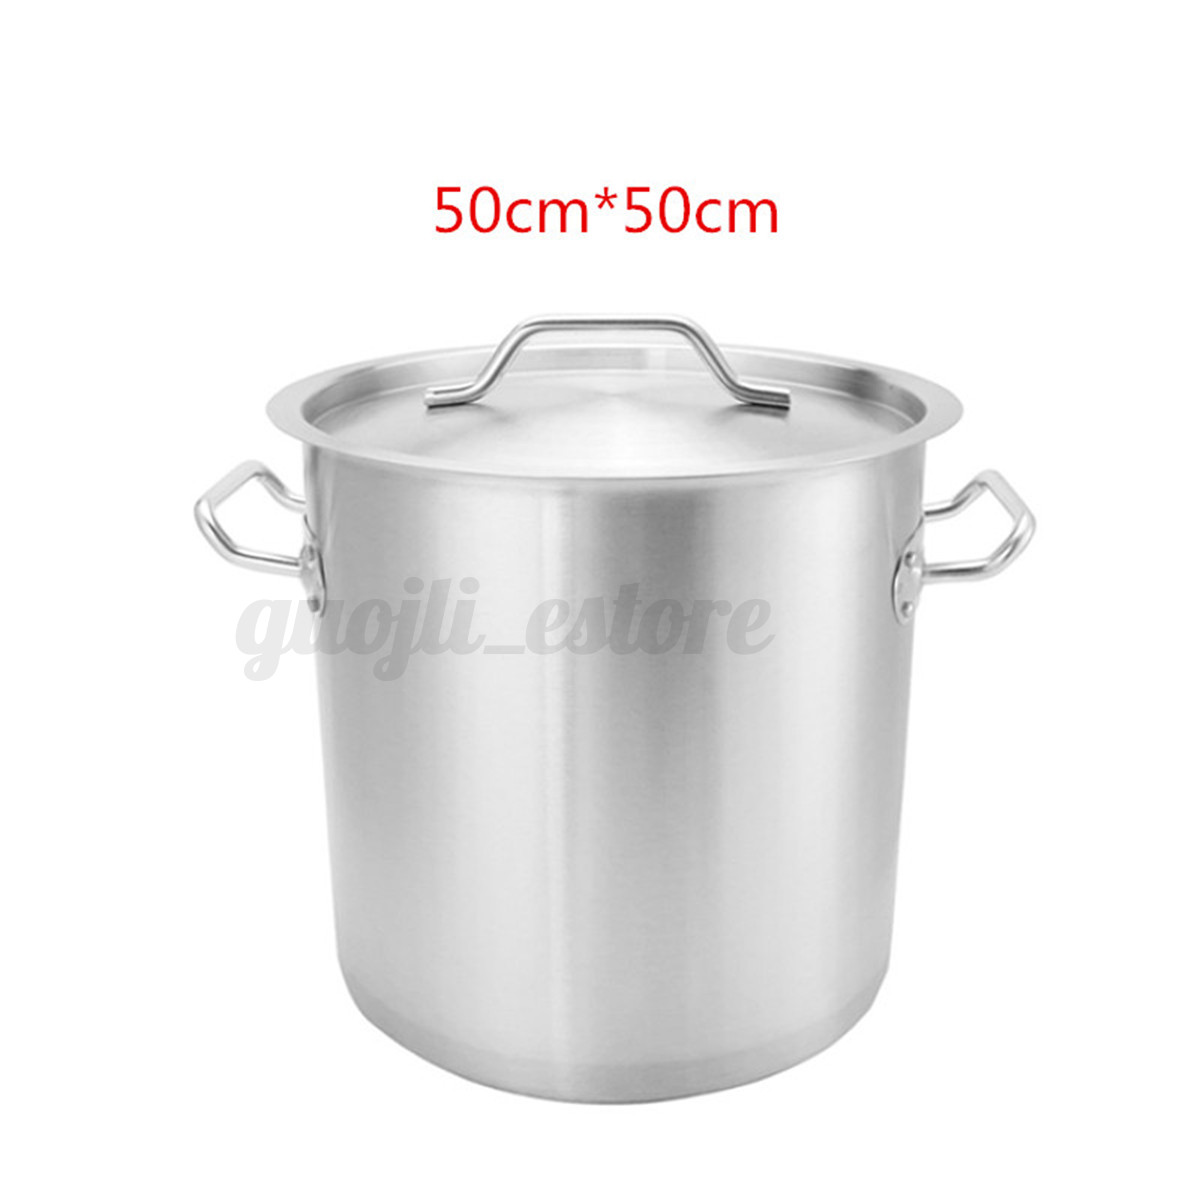 Thicken-Stainless-Steel-Stock-Pots-Induction-Kitchen-Soup-Cookware-35-40-45-50cm